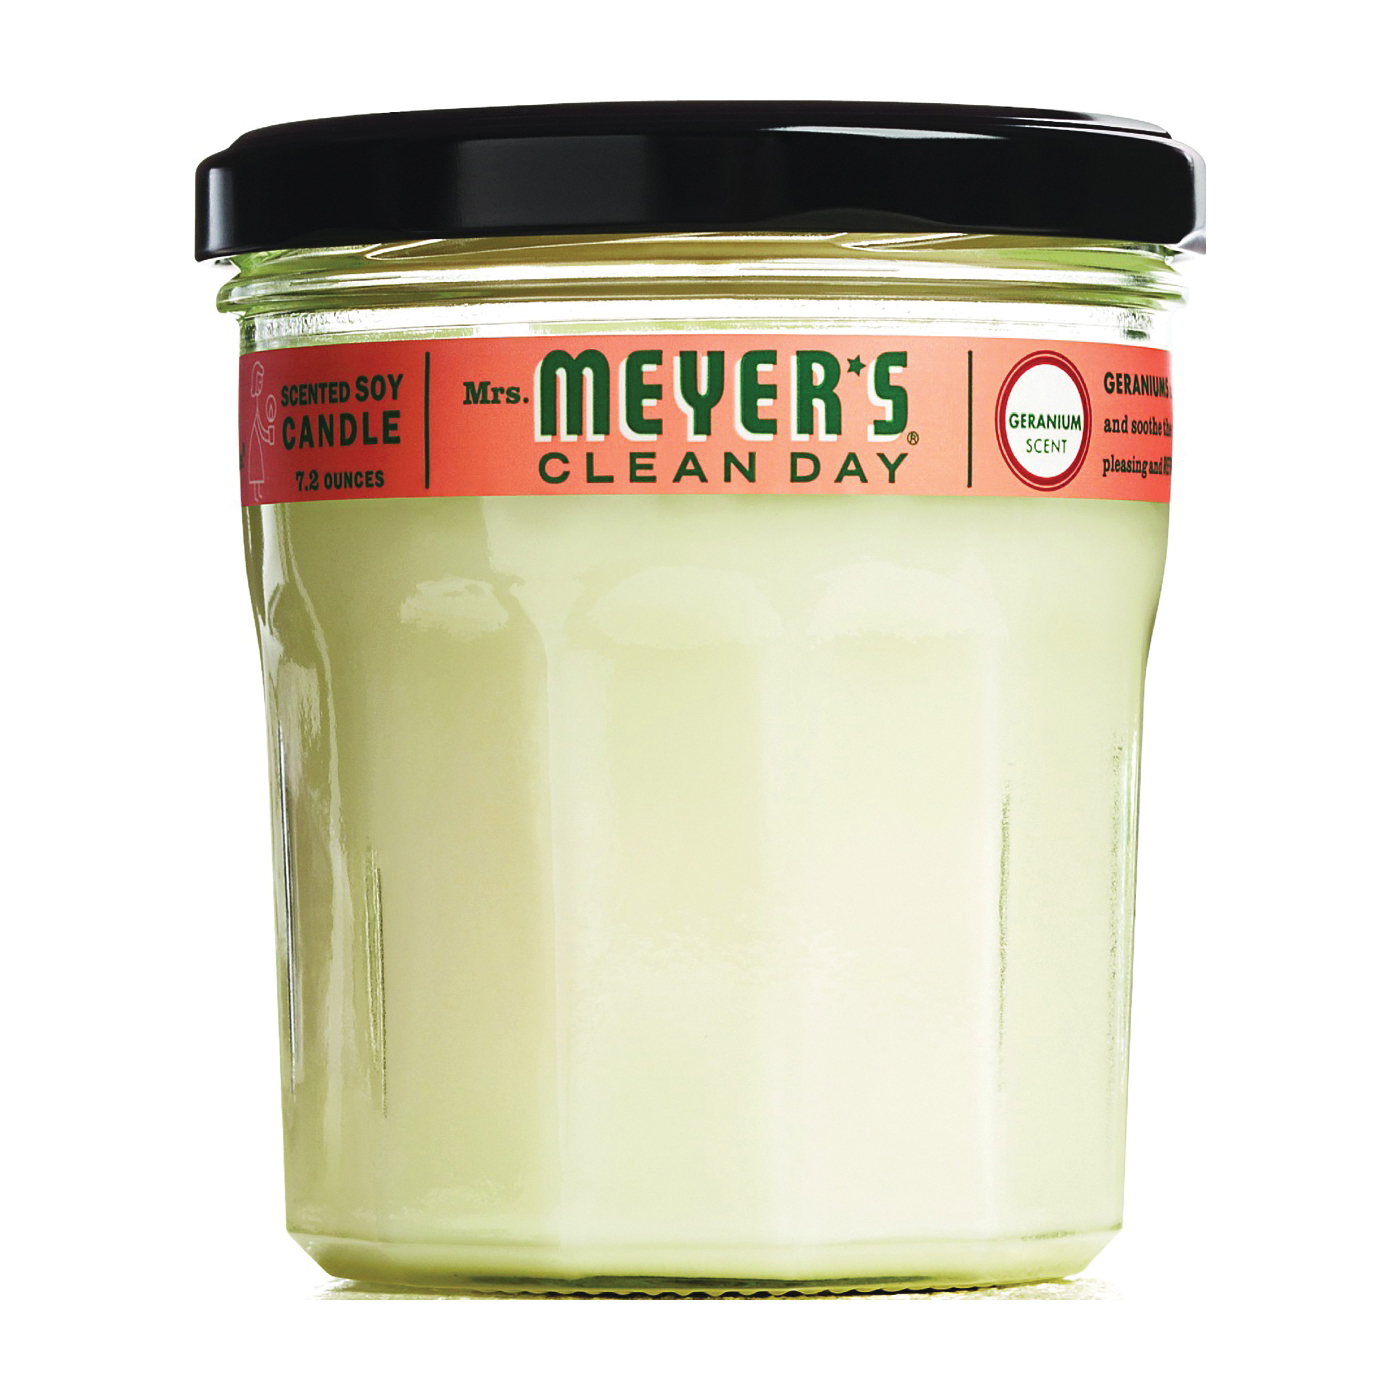 Picture of Mrs. Meyer's 43116 Soy Candle, Geranium Fragrance, White Candle, 35 hr Burning